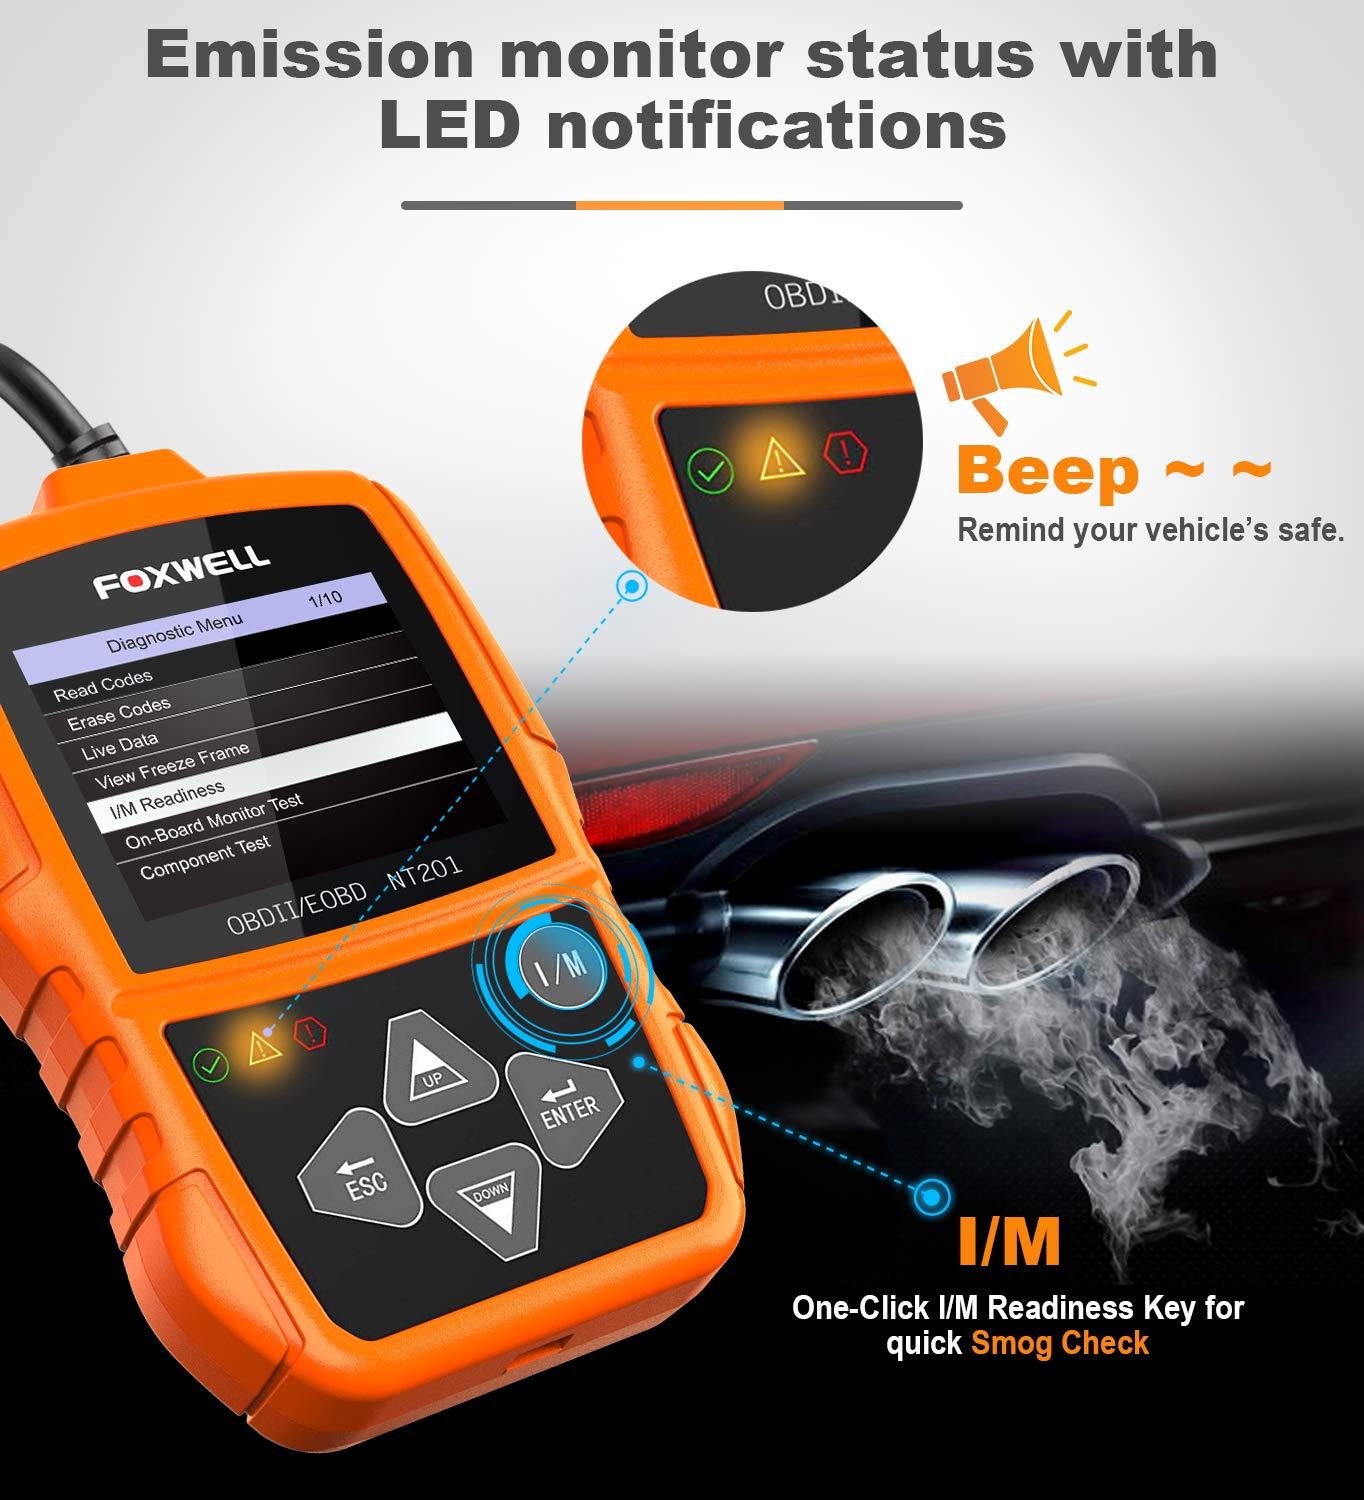 OBD2//OBD II Car Engine Diagnostics Code Reader Auto Diagnostic Scan Tool Automotive Scanners for 2000 or Later US,European and Asian OBDII Vehicle FOXWELL NT201 Orange